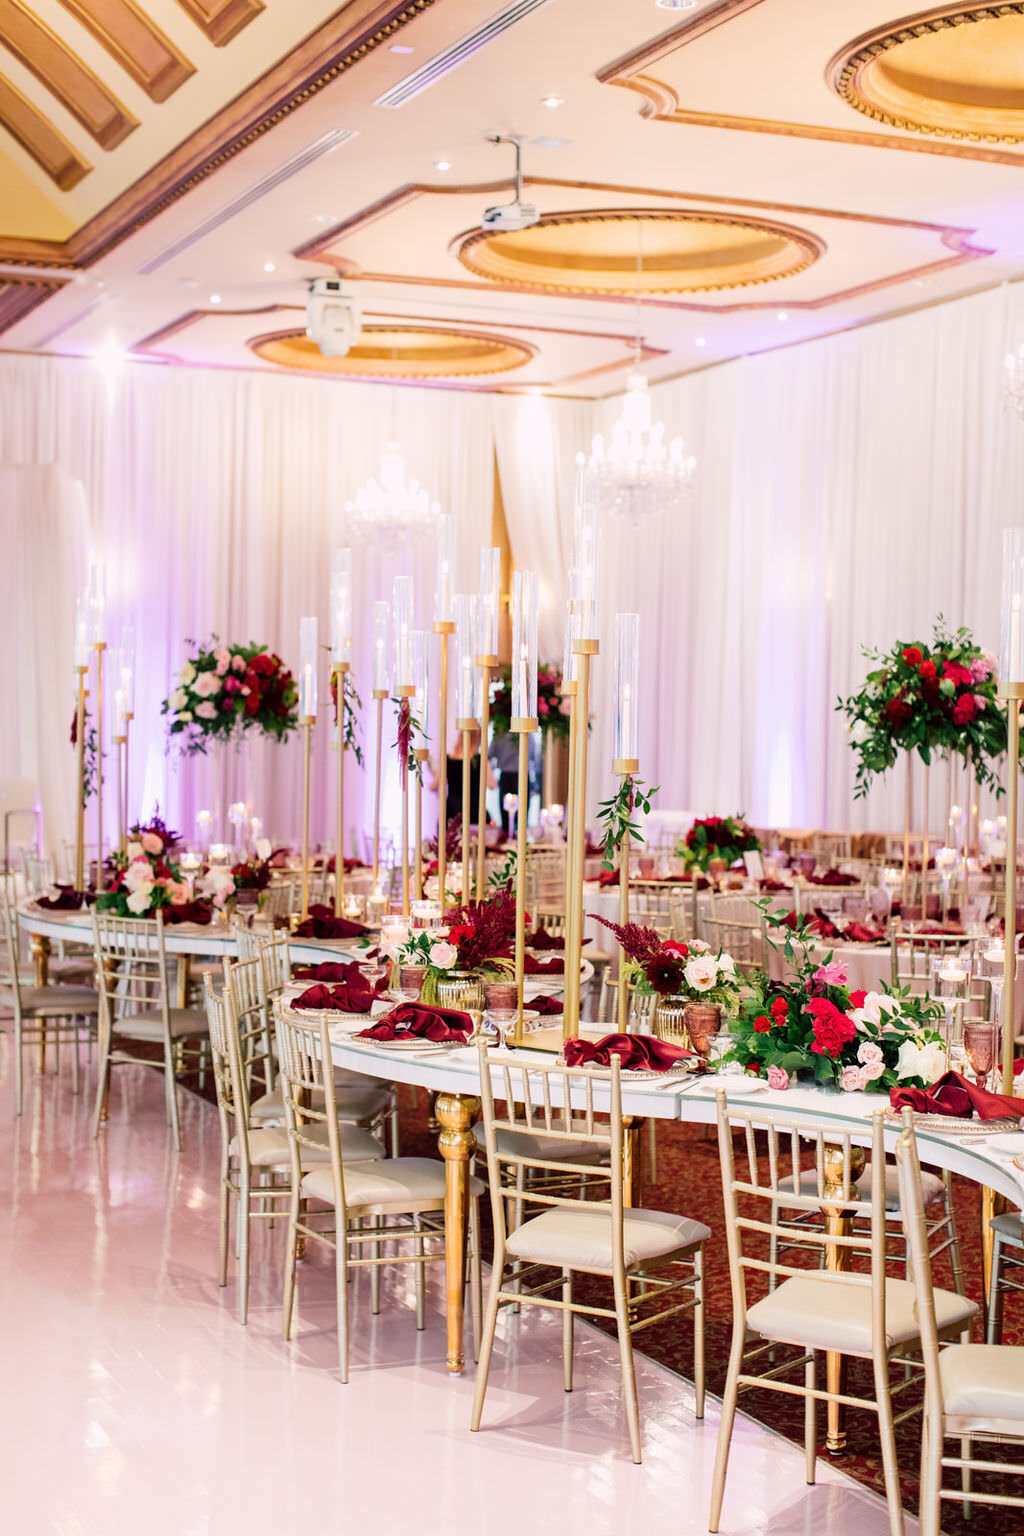 Diana-Pires-Events-RoyalAmbassador-Toronto-Wedding-0001-147